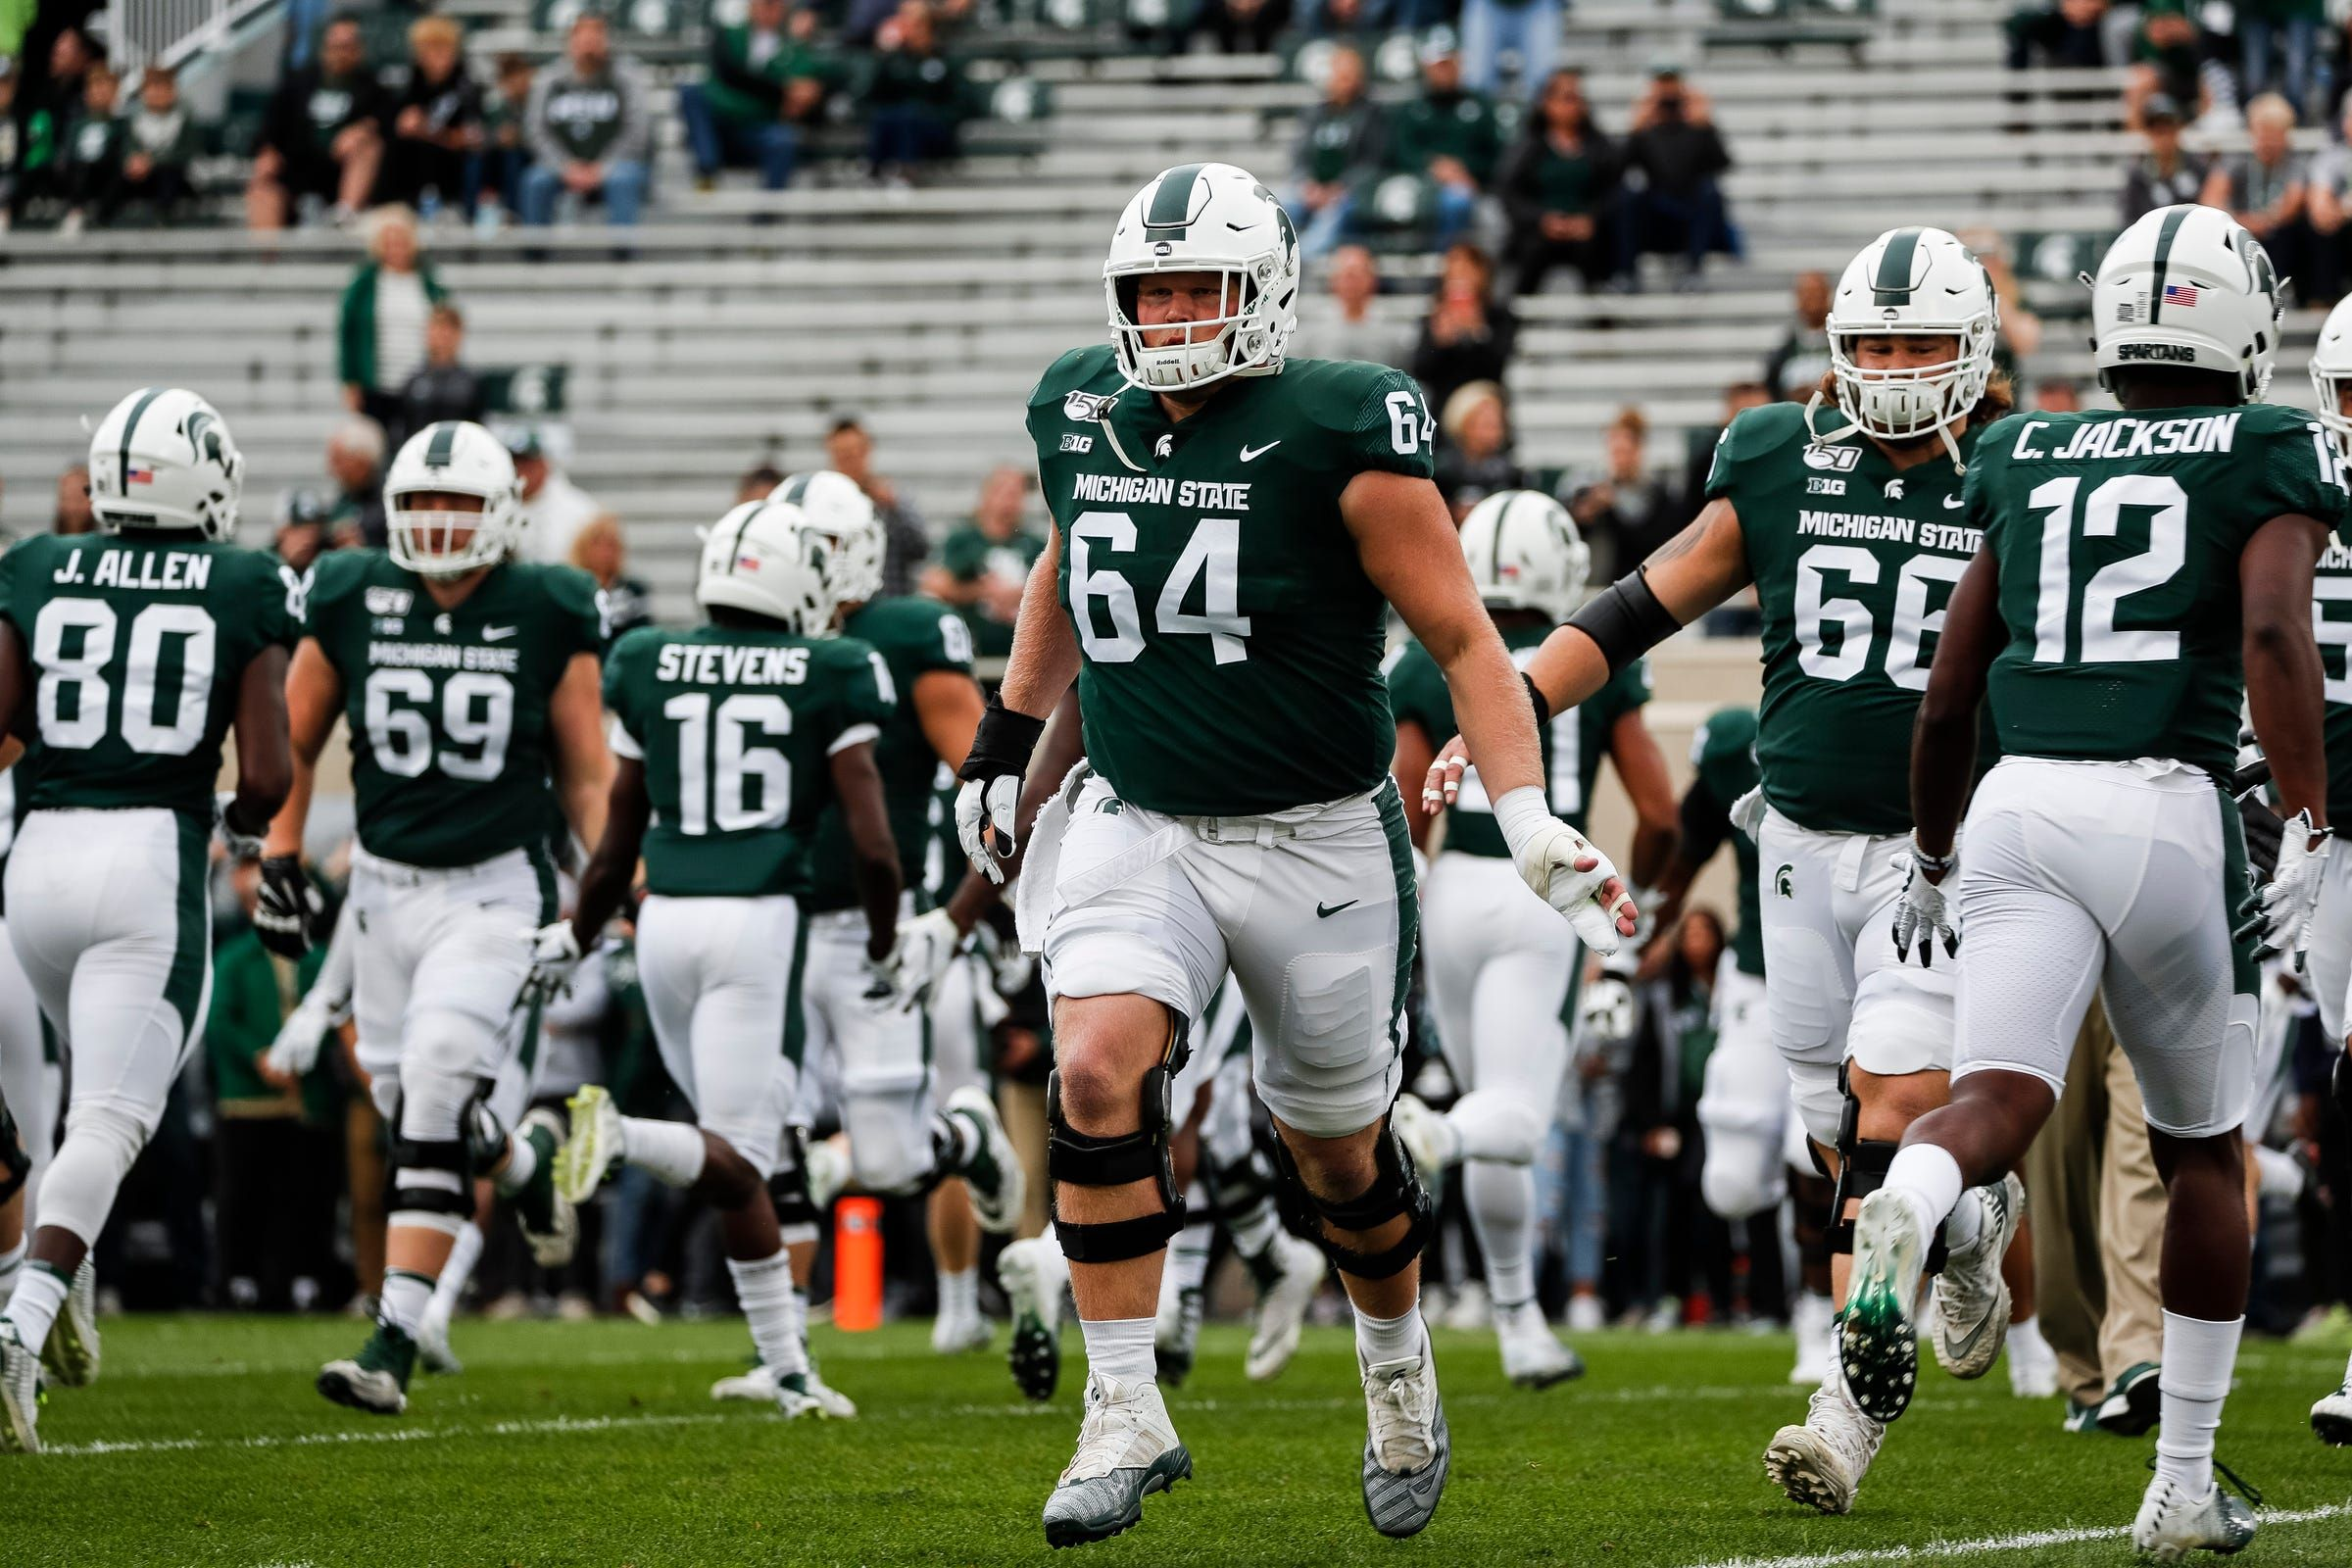 Michigan State Football Players Find Out Brothers Come In Handy In Workouts In 2020 Football Workouts College Football Gameday Michigan State Football